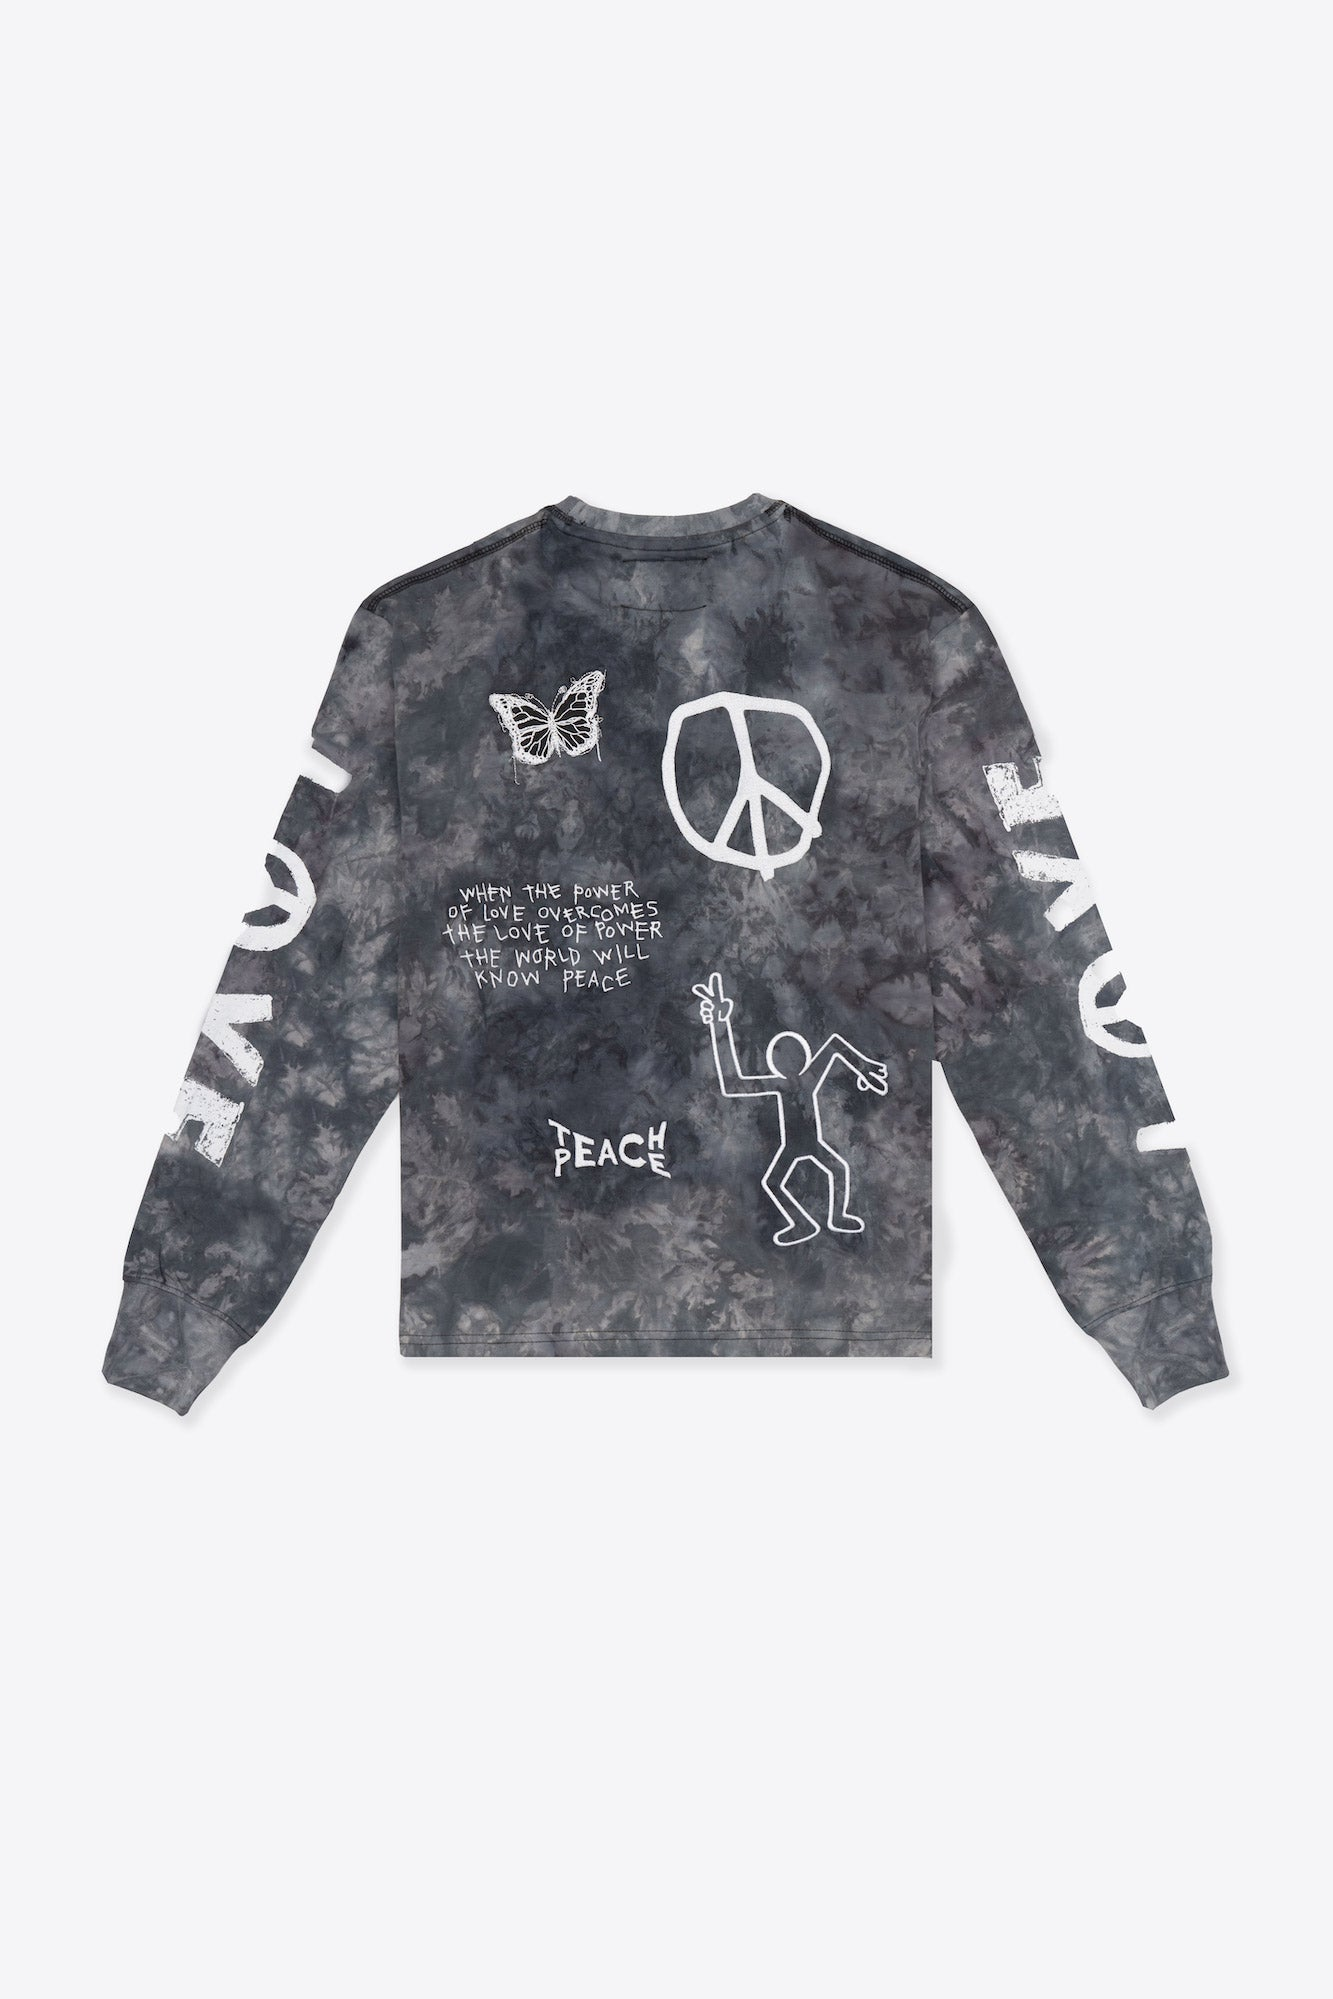 Tie Dye Love Peace Cuffed L/S T-Shirt (Chalk/Black)